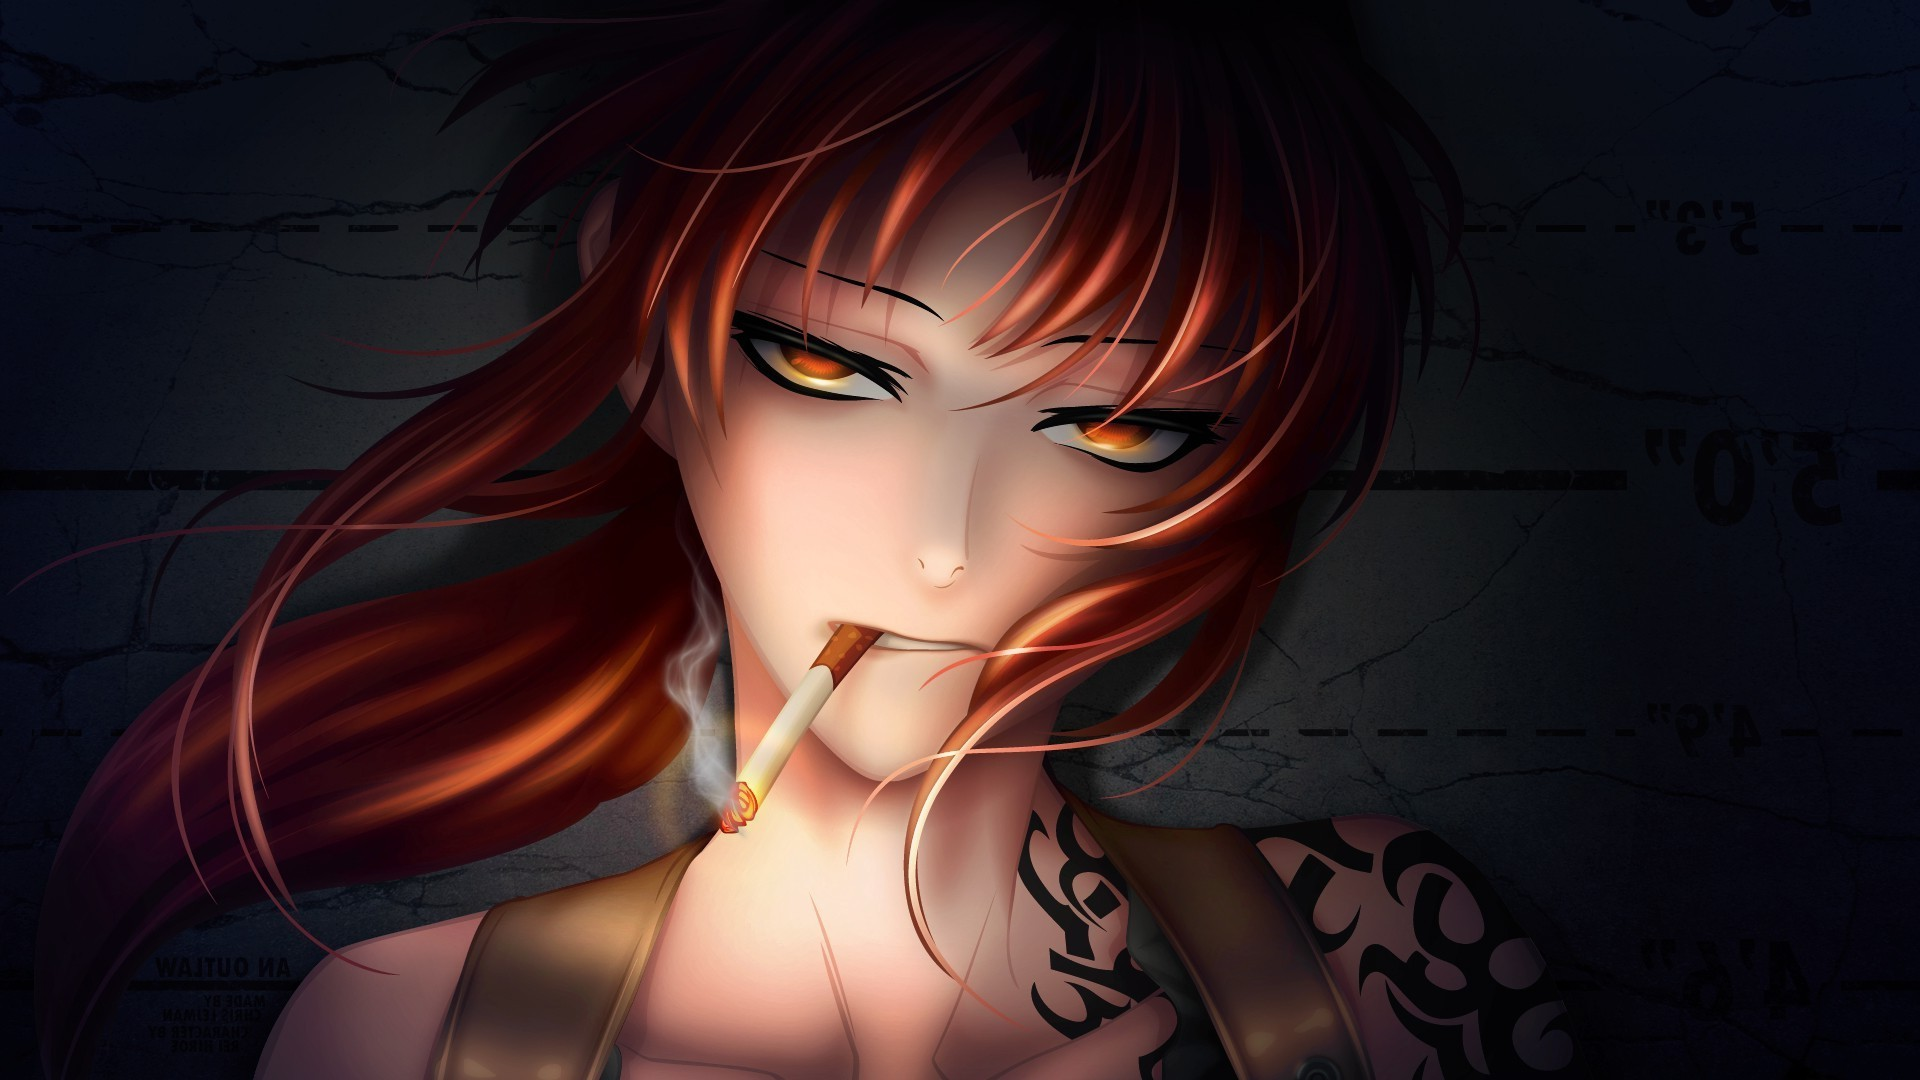 1920x1080 anime, Badass, Tattoo, Anime Girls, Cigarettes, Redhead, Red Eyes, Revy,  Black Lagoon Wallpapers HD / Desktop and Mobile Backgrounds